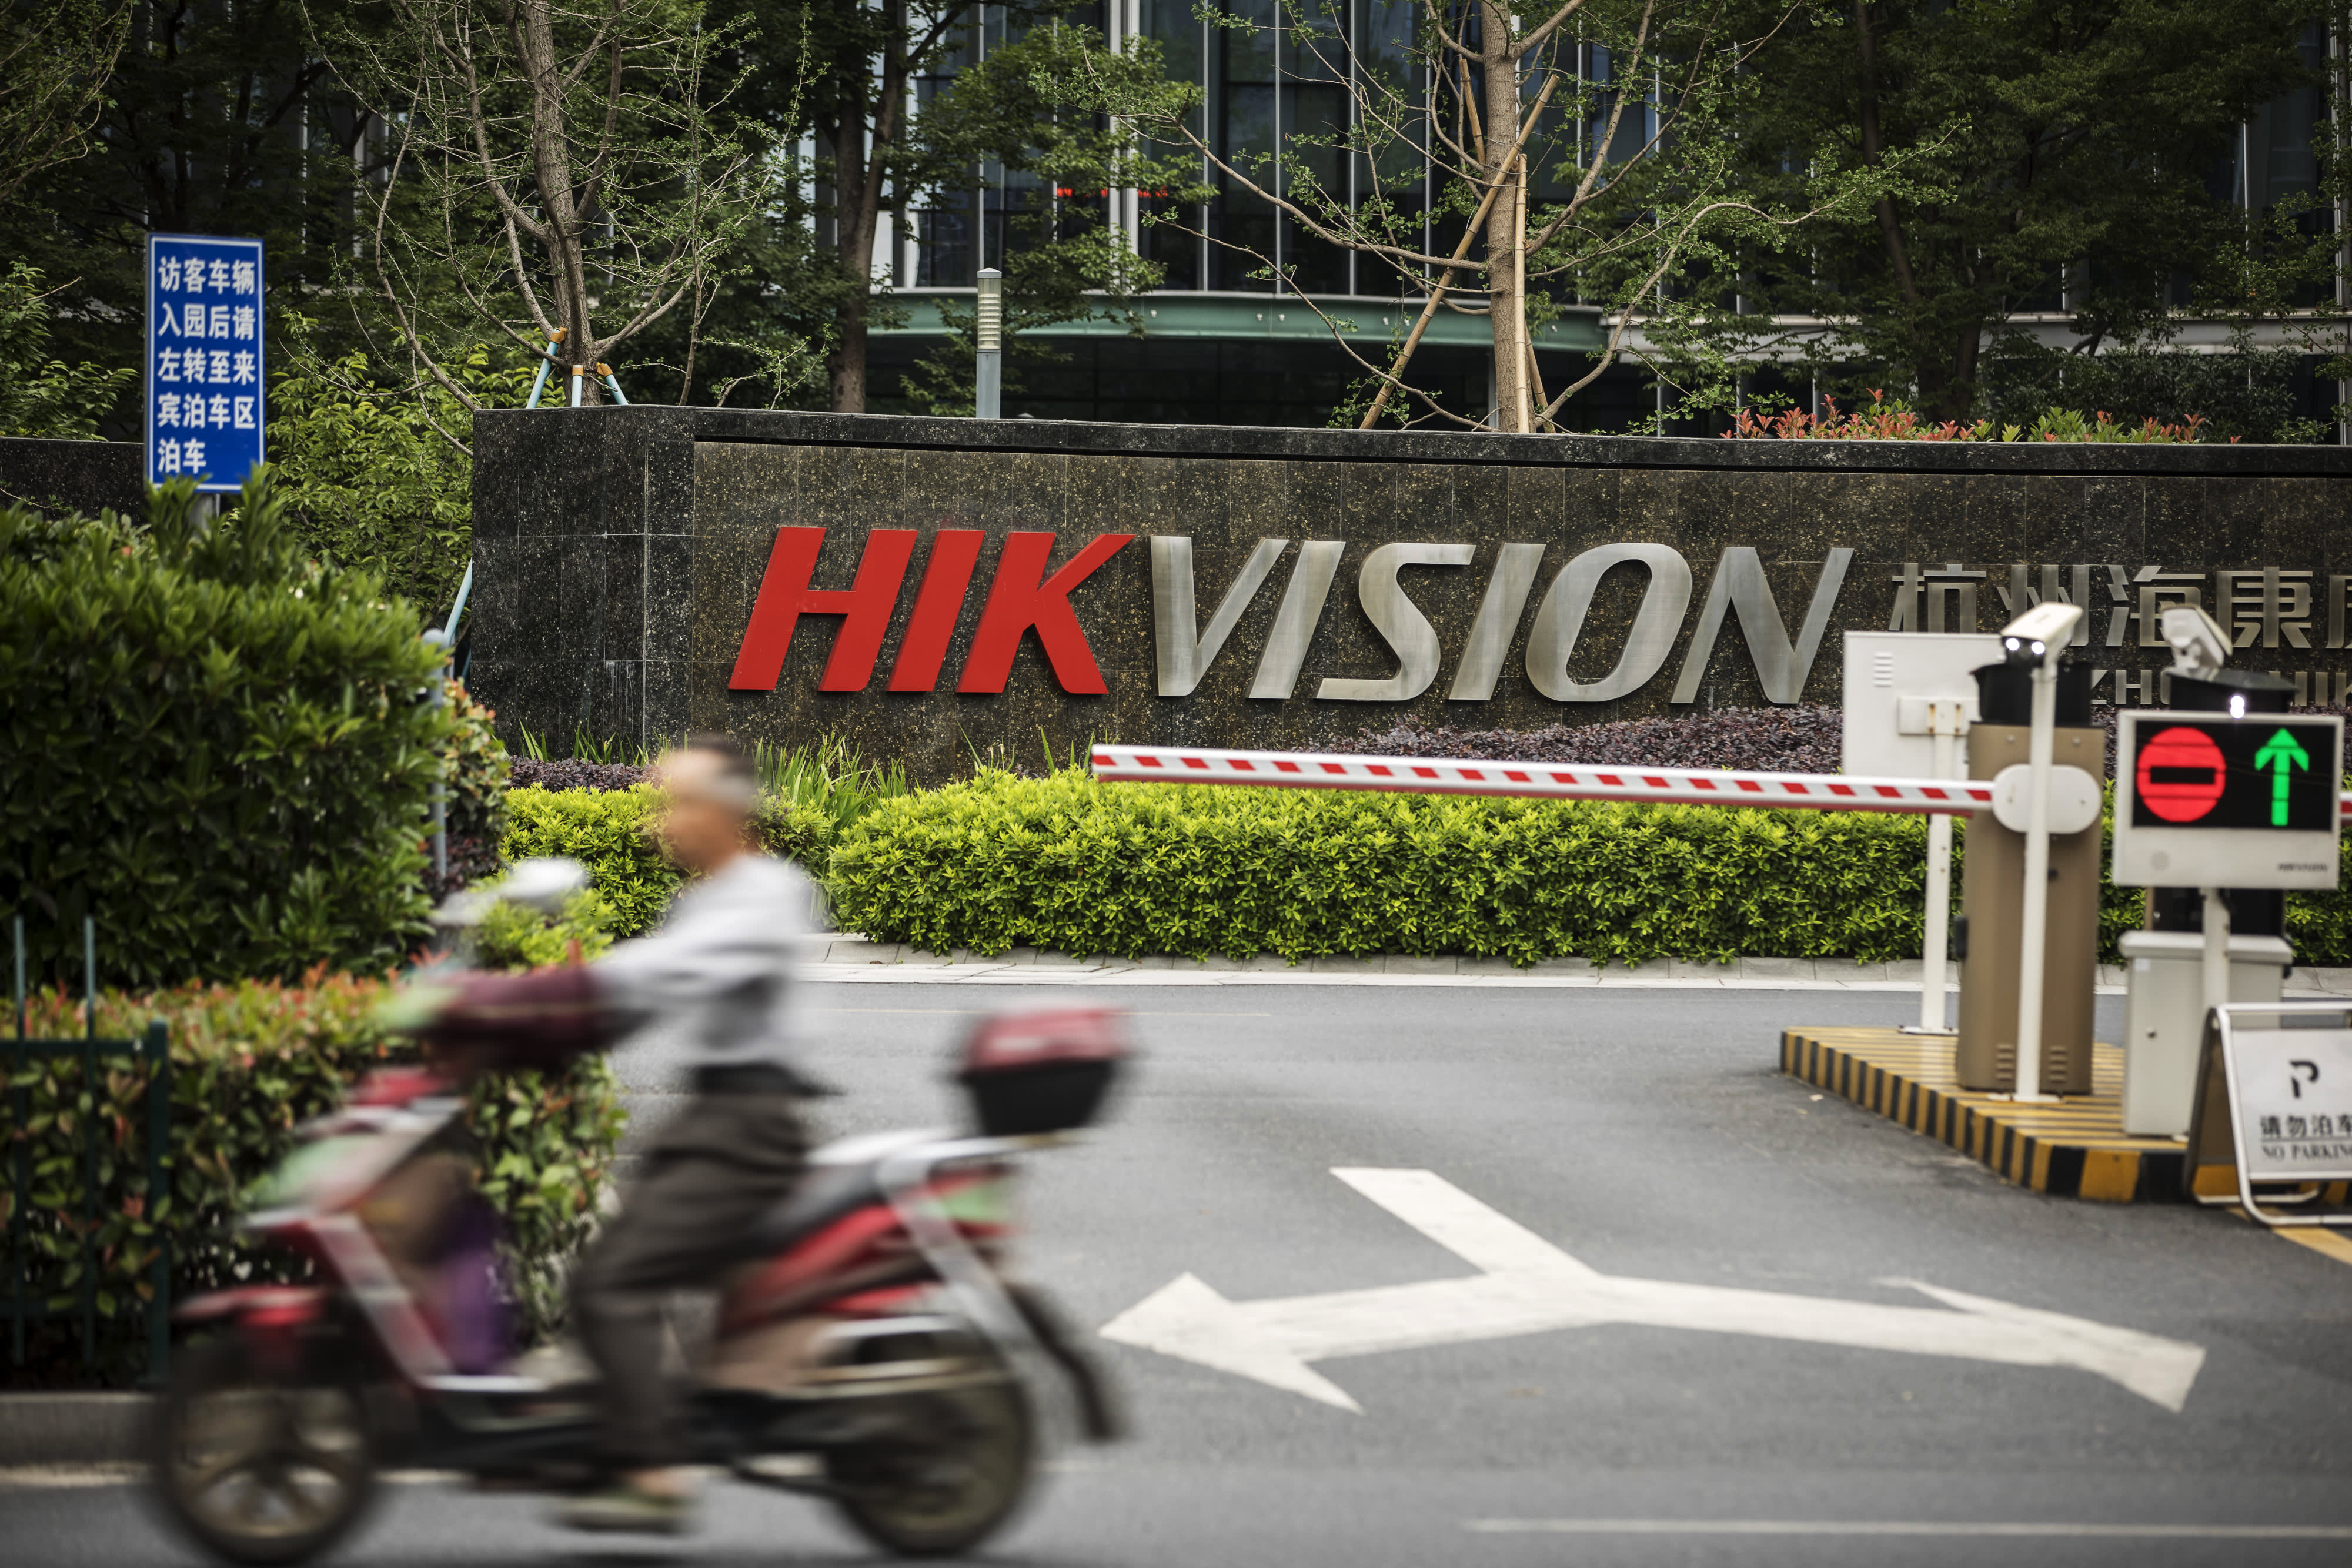 Chinese securities regulator names 2 directors of surveillance camera giant Hikvision in investigation